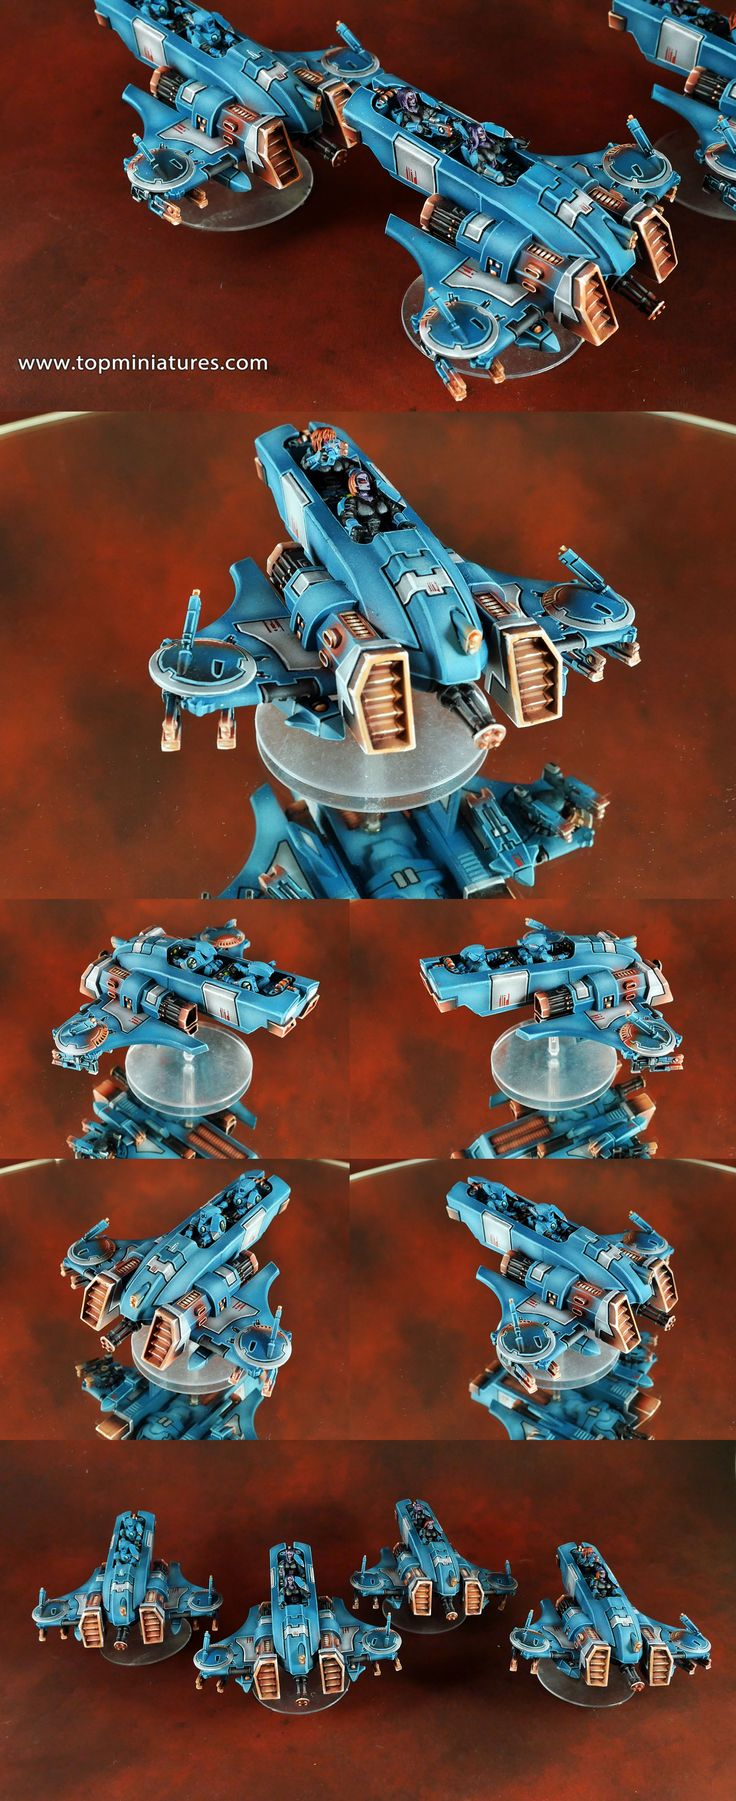 Warhammer 40k tau empire piranha conversion with female crew